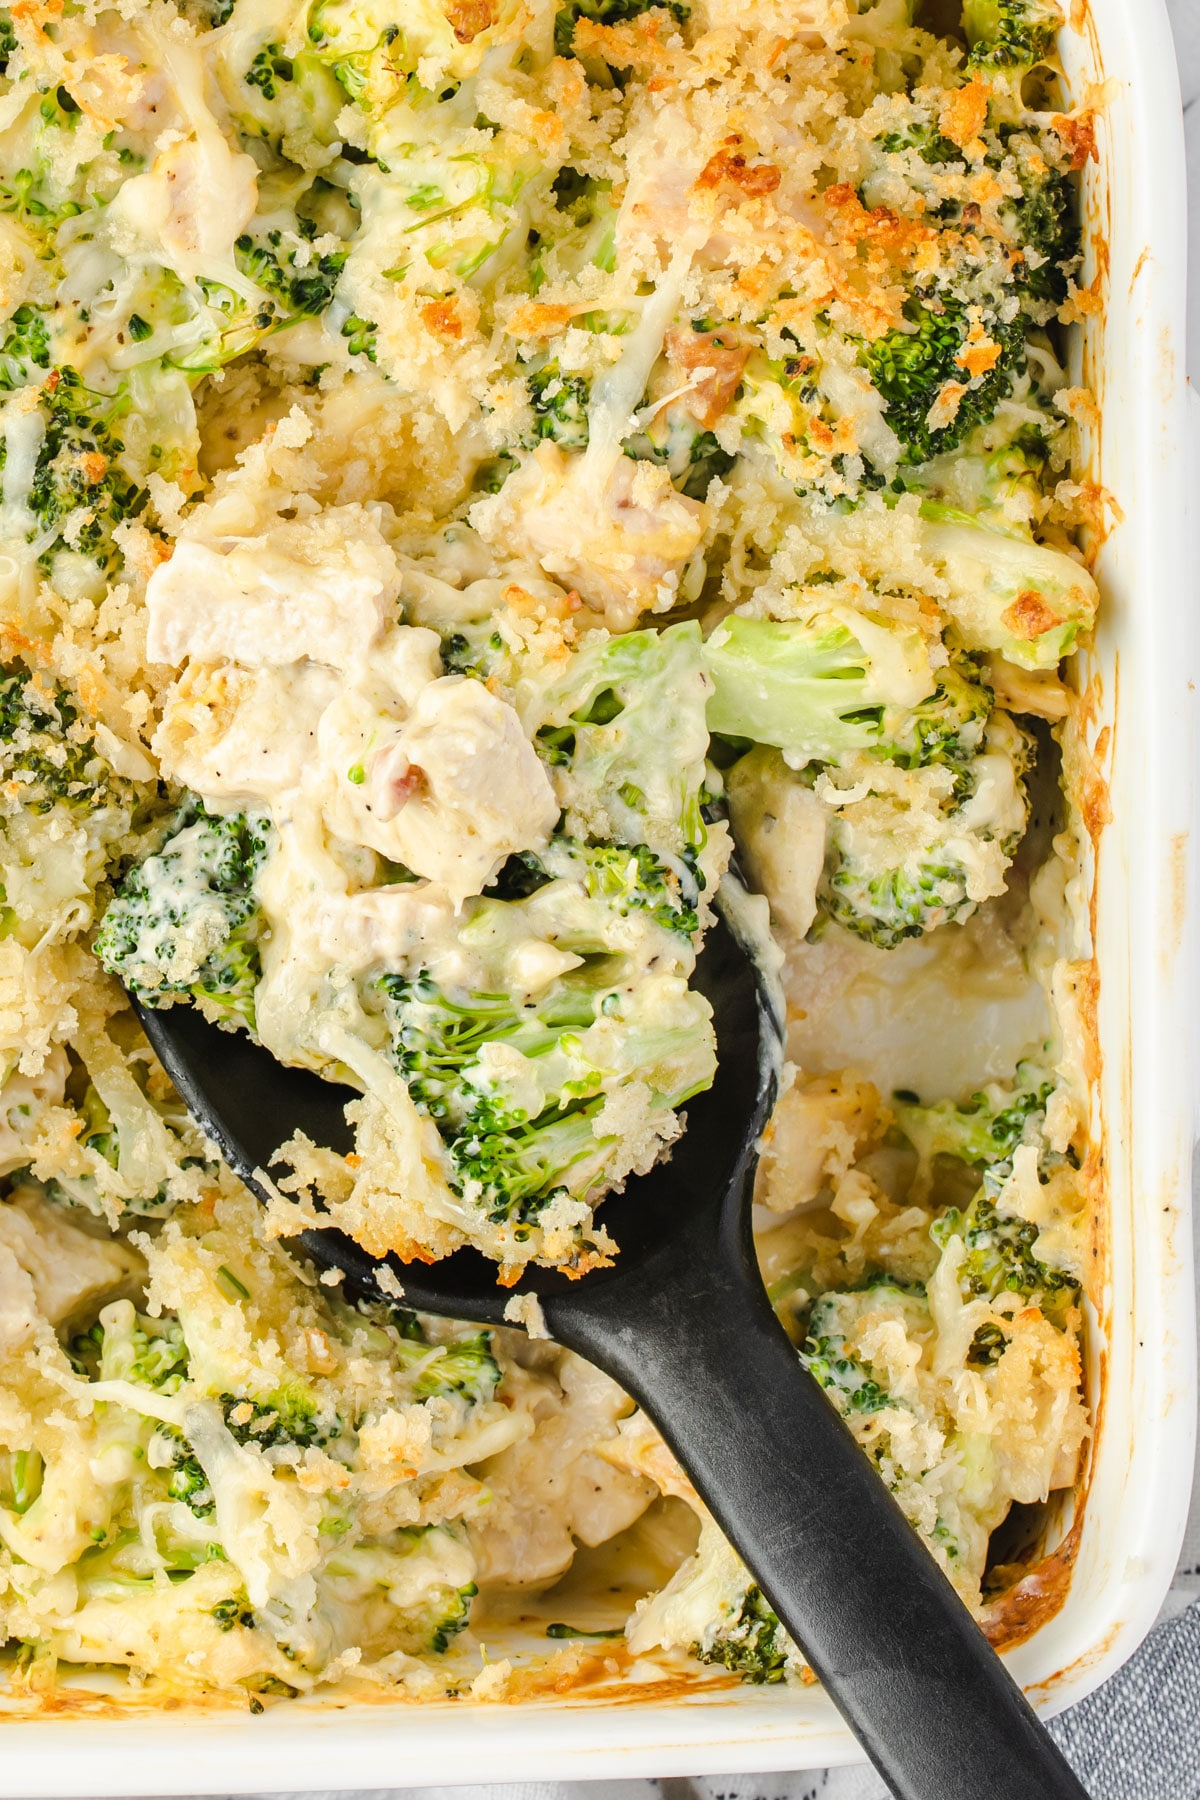 broccoli & chicken casserole scooped with a black spoon.